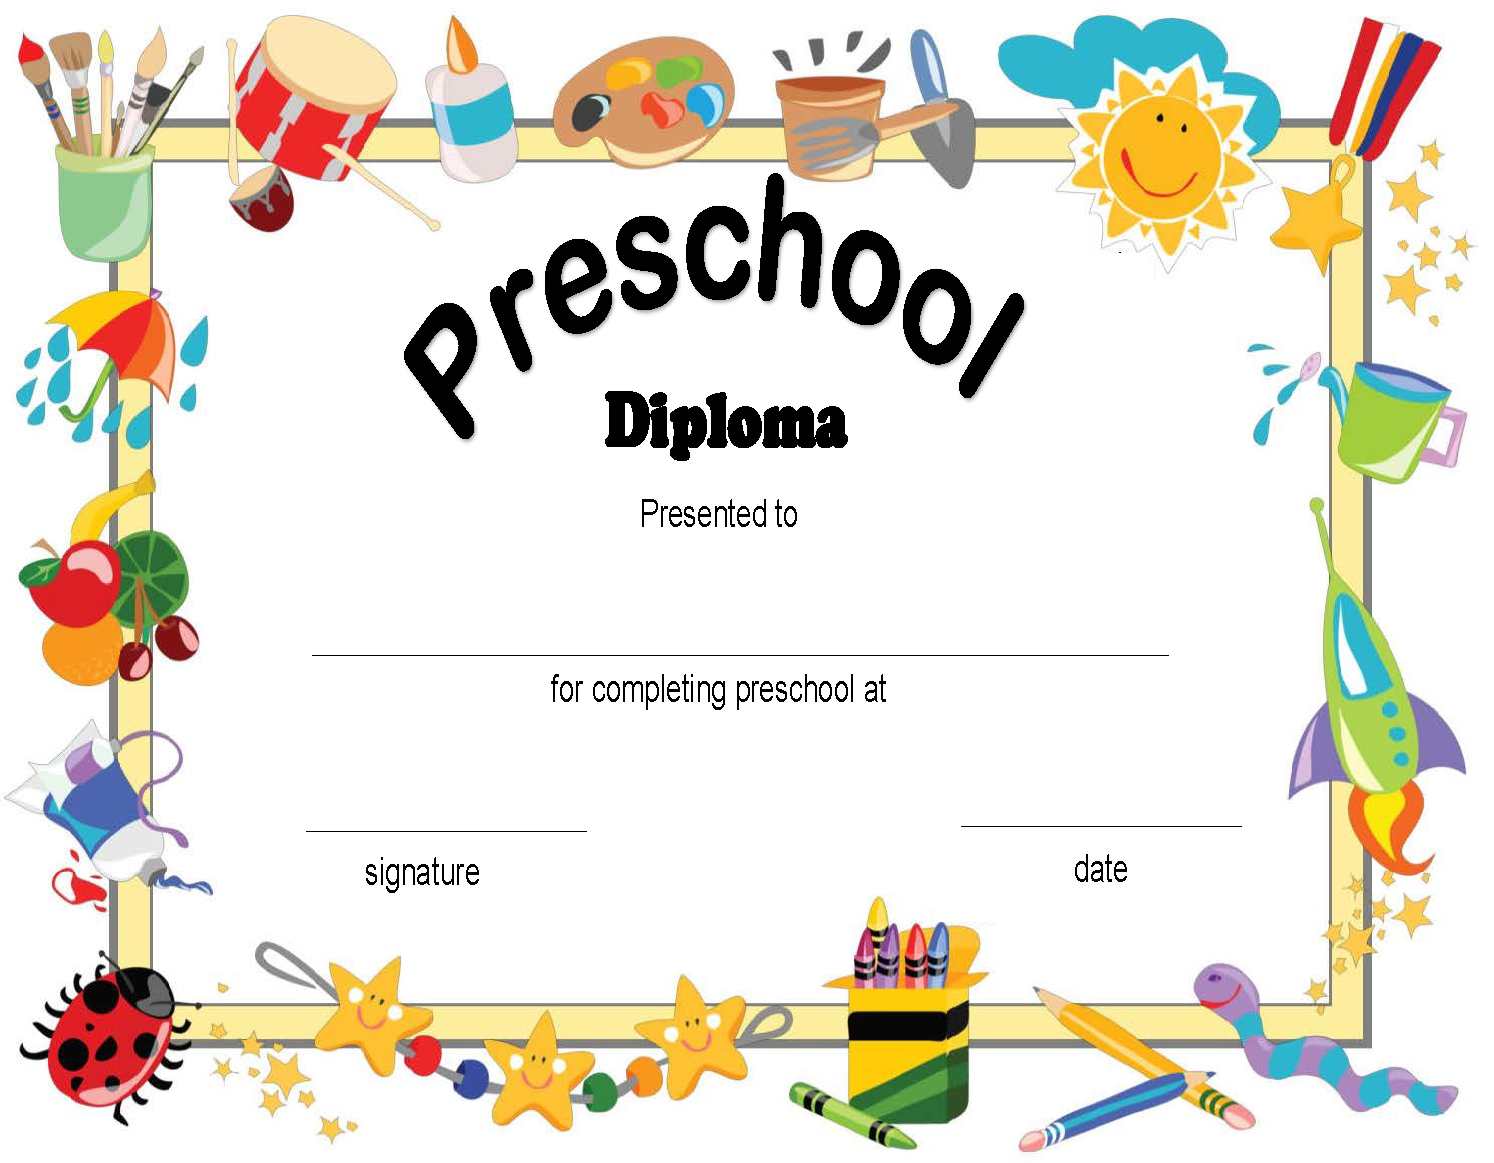 Free preschool diploma certificate templates at preschool diploma certificate main image download template yelopaper Gallery